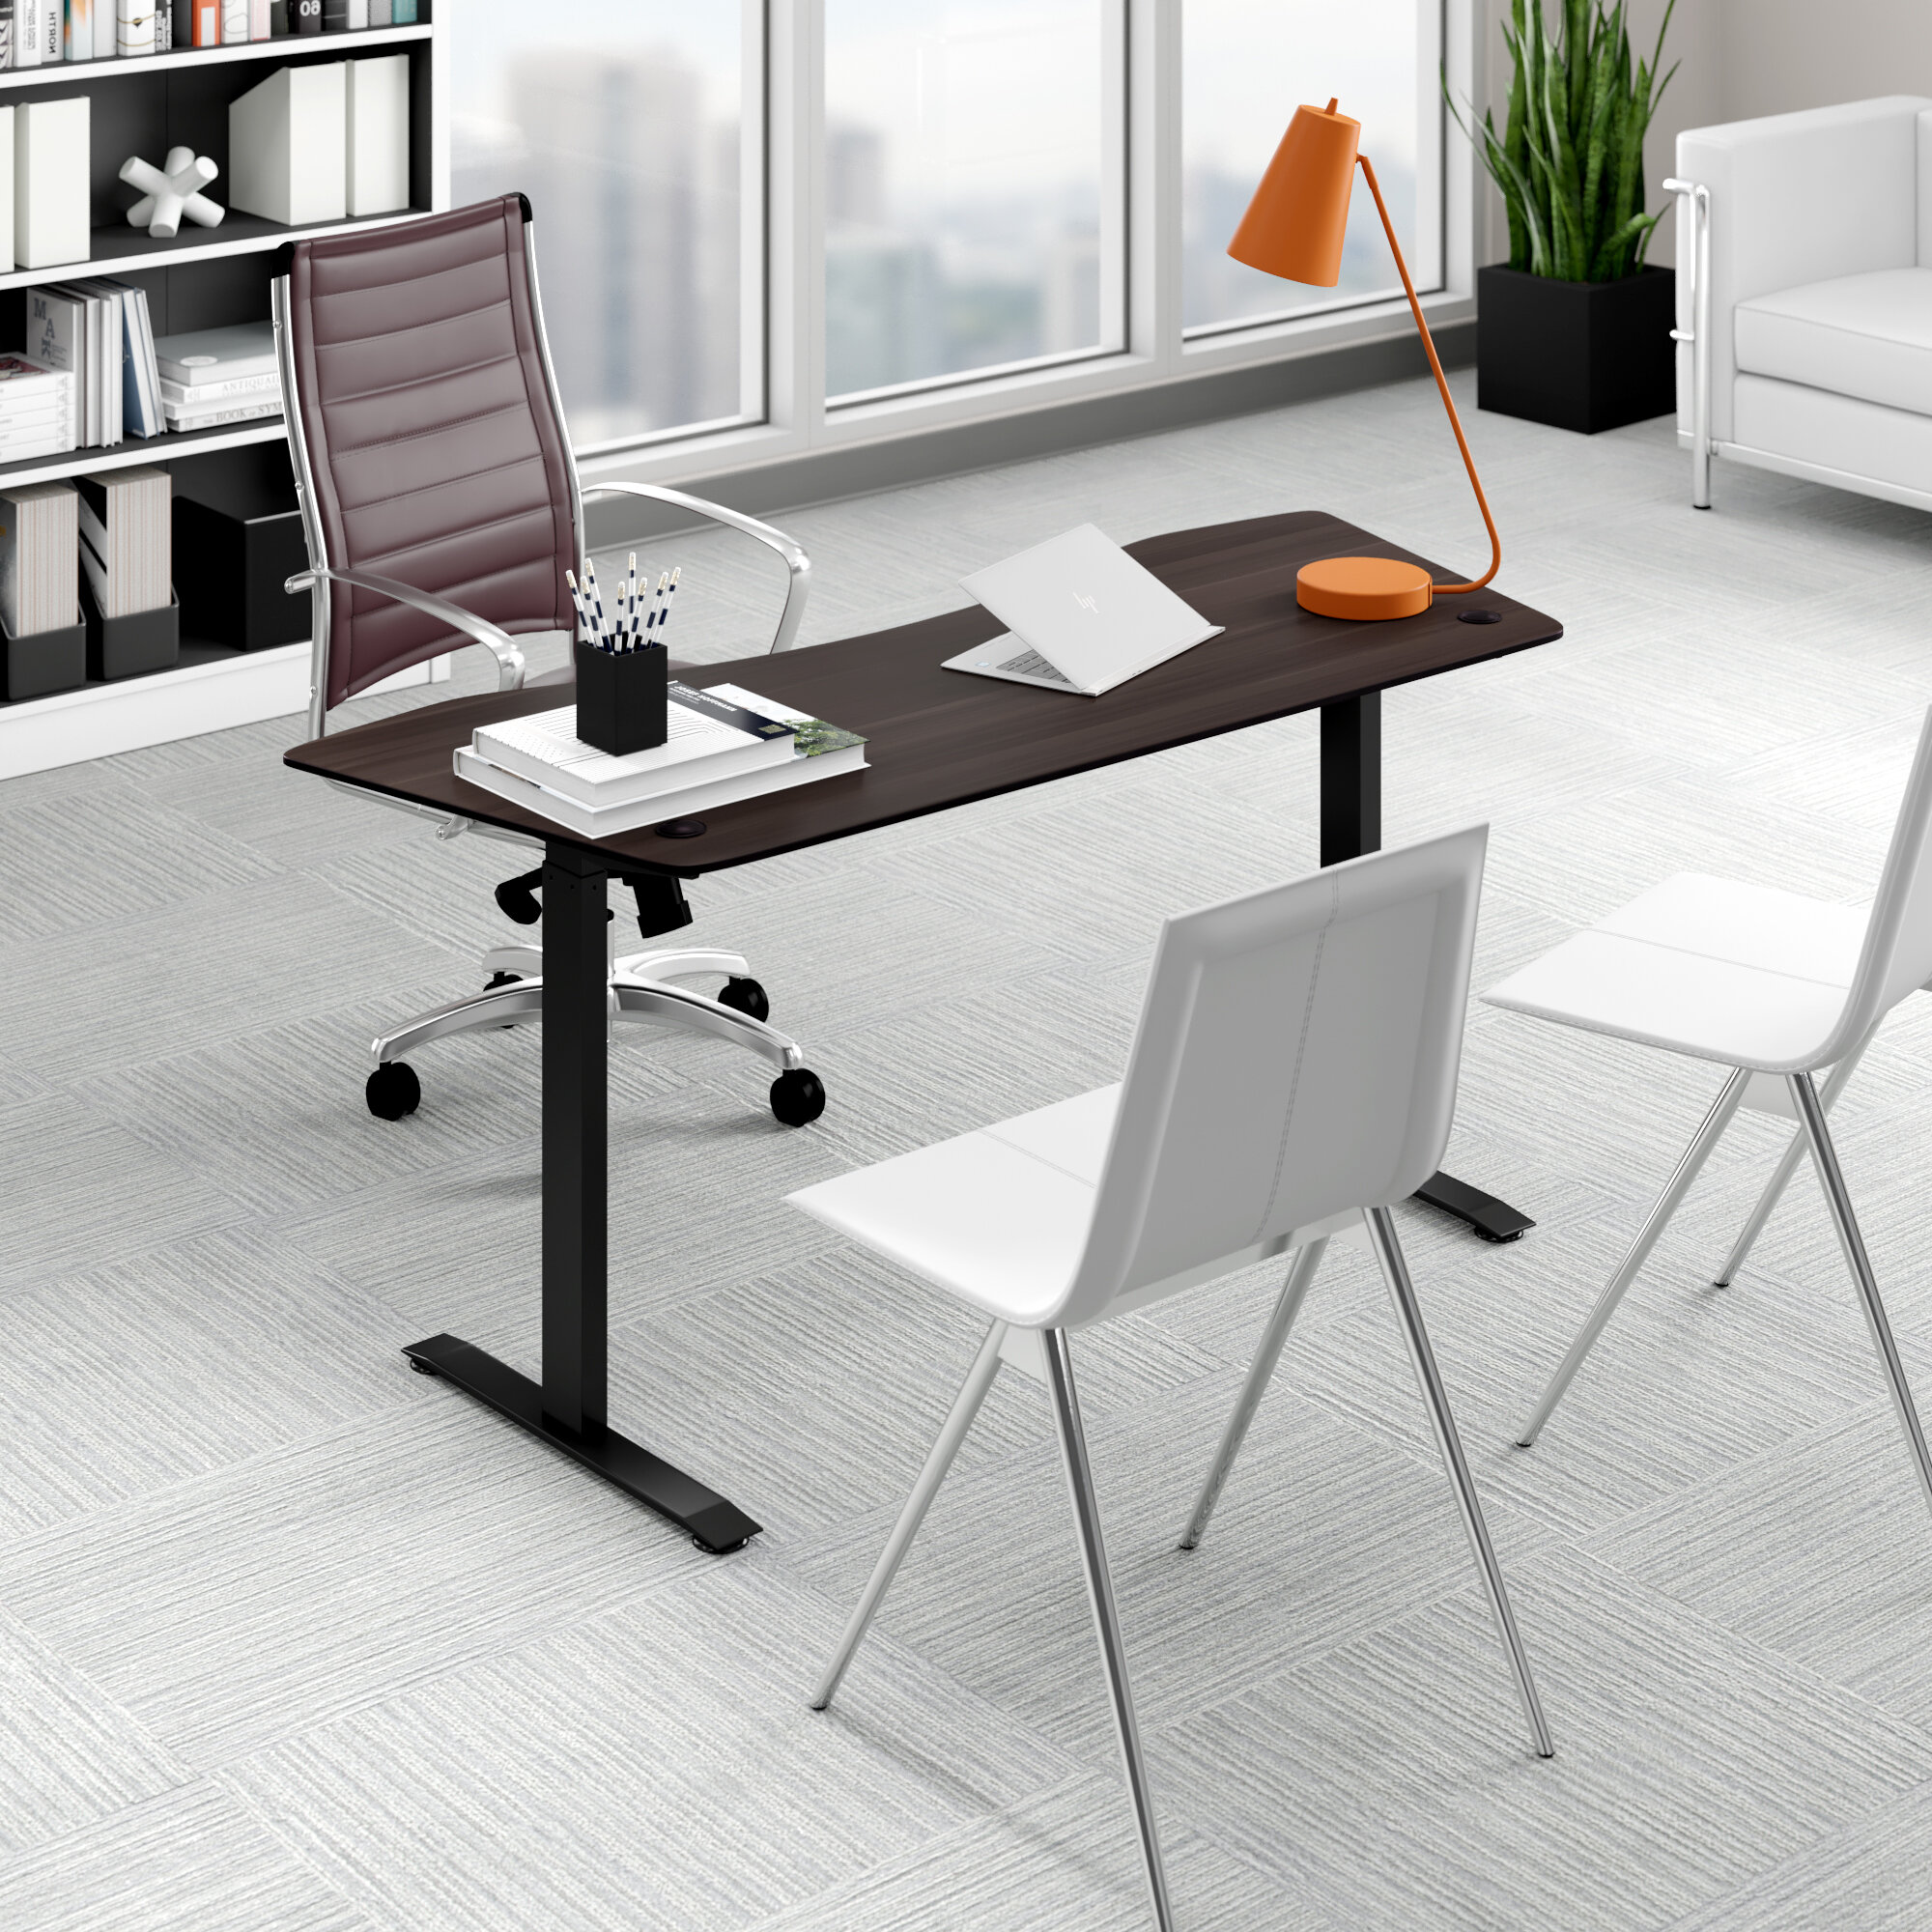 Double Two Person Desks You Ll Love